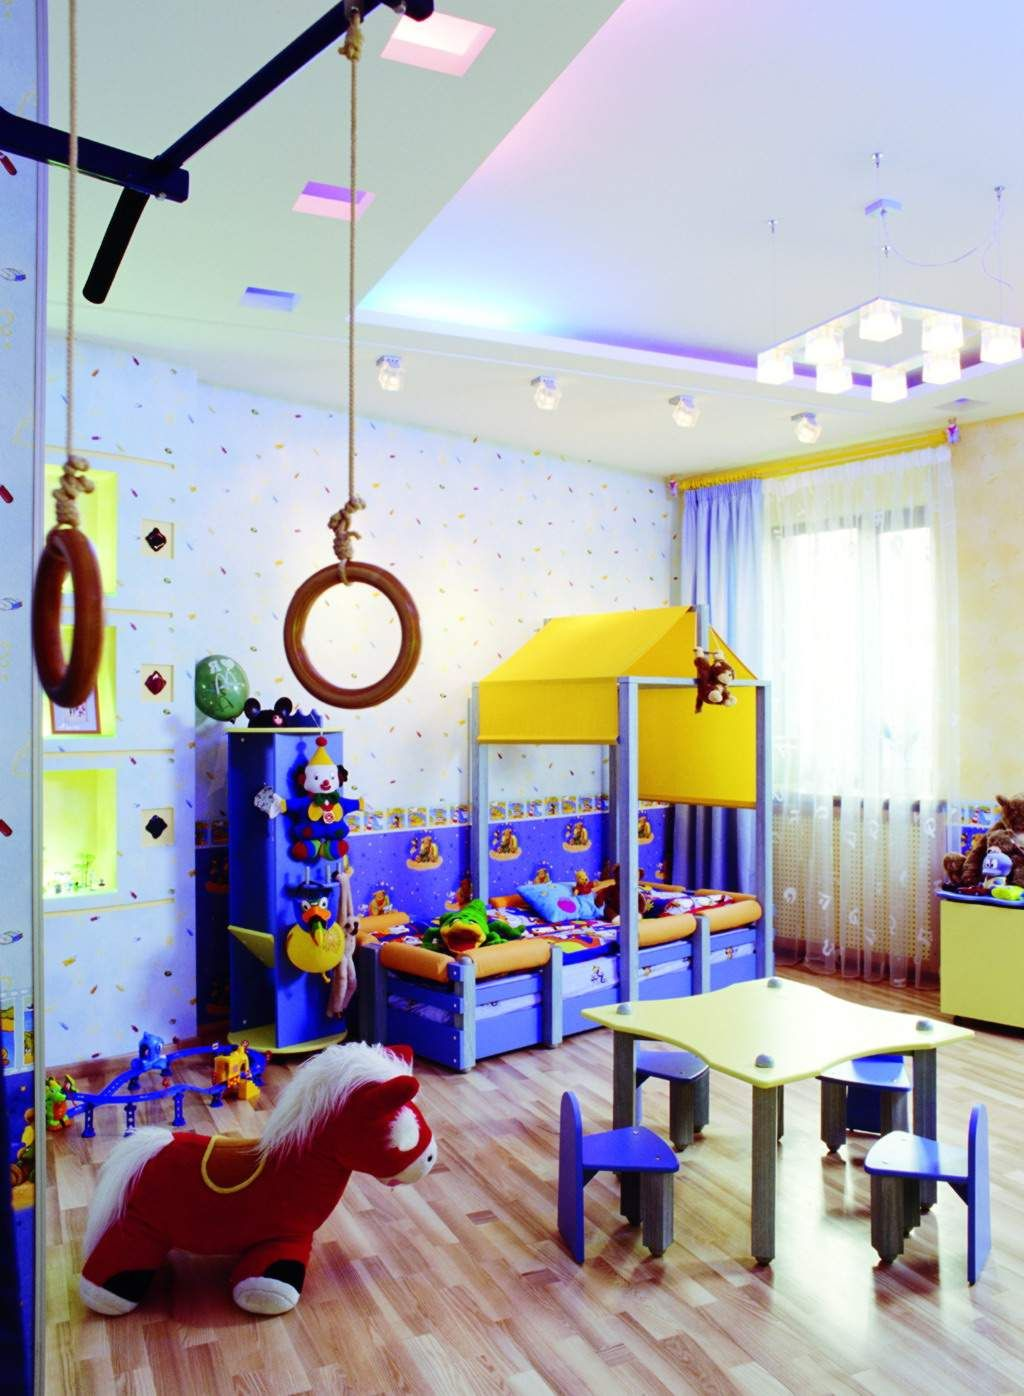 Kids Bedroom Furniture Ikea Kids Bedroom Kids Room Interior Design With Play And Learn Area